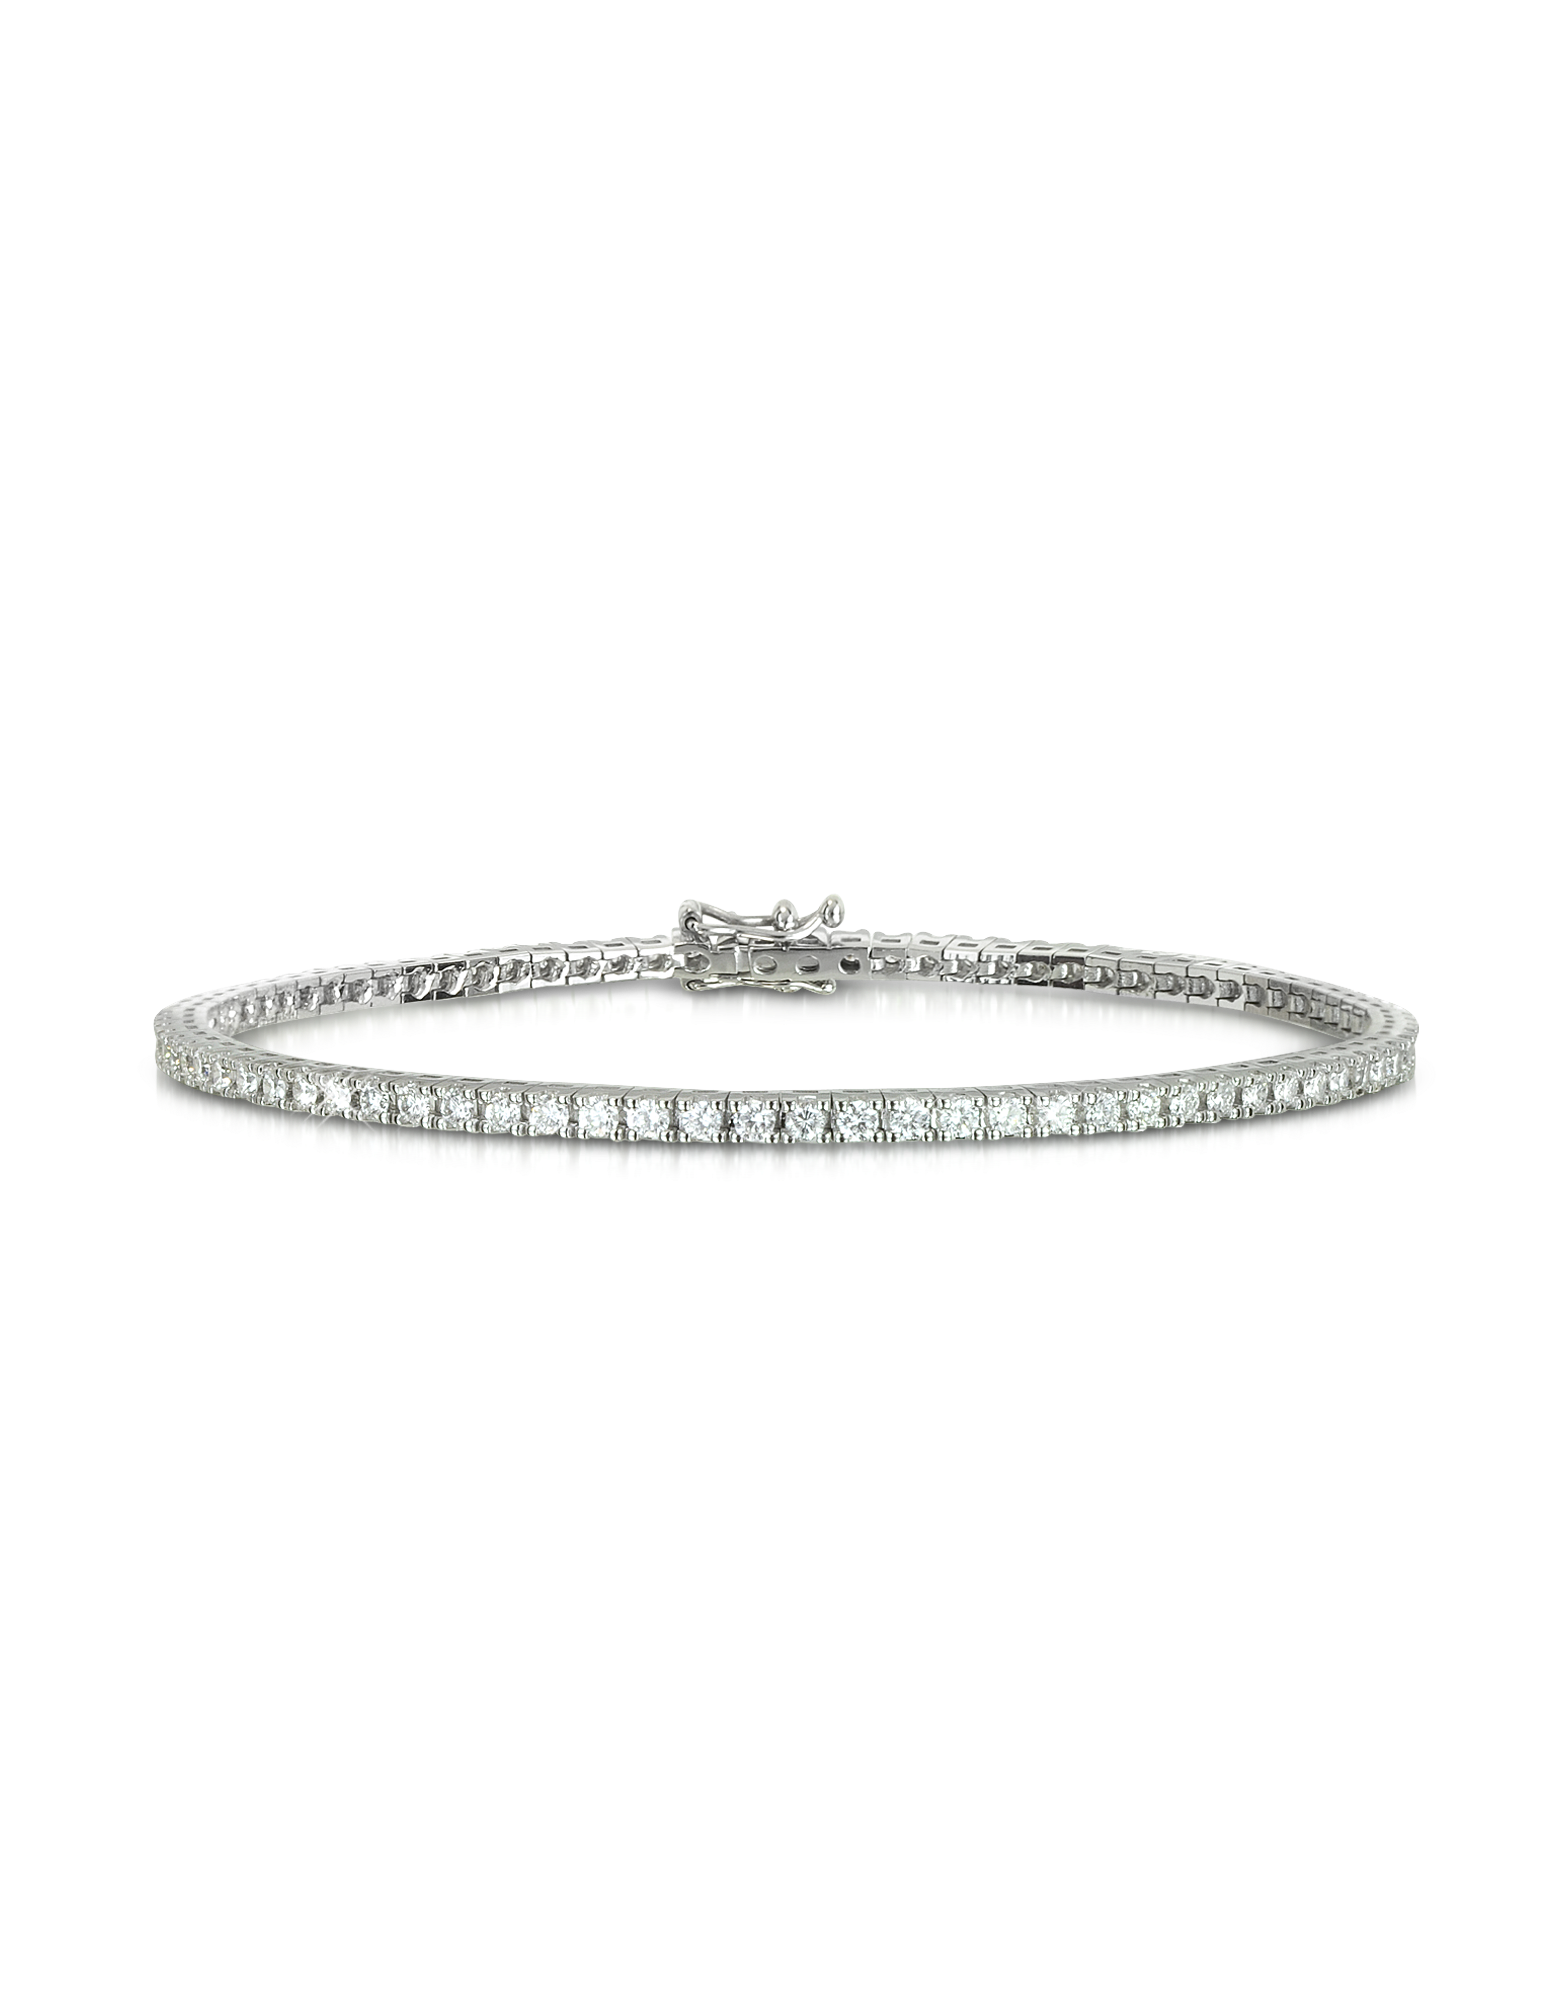 Image of 1.56 ctw Diamond 18K White Gold Tennis Bracelet